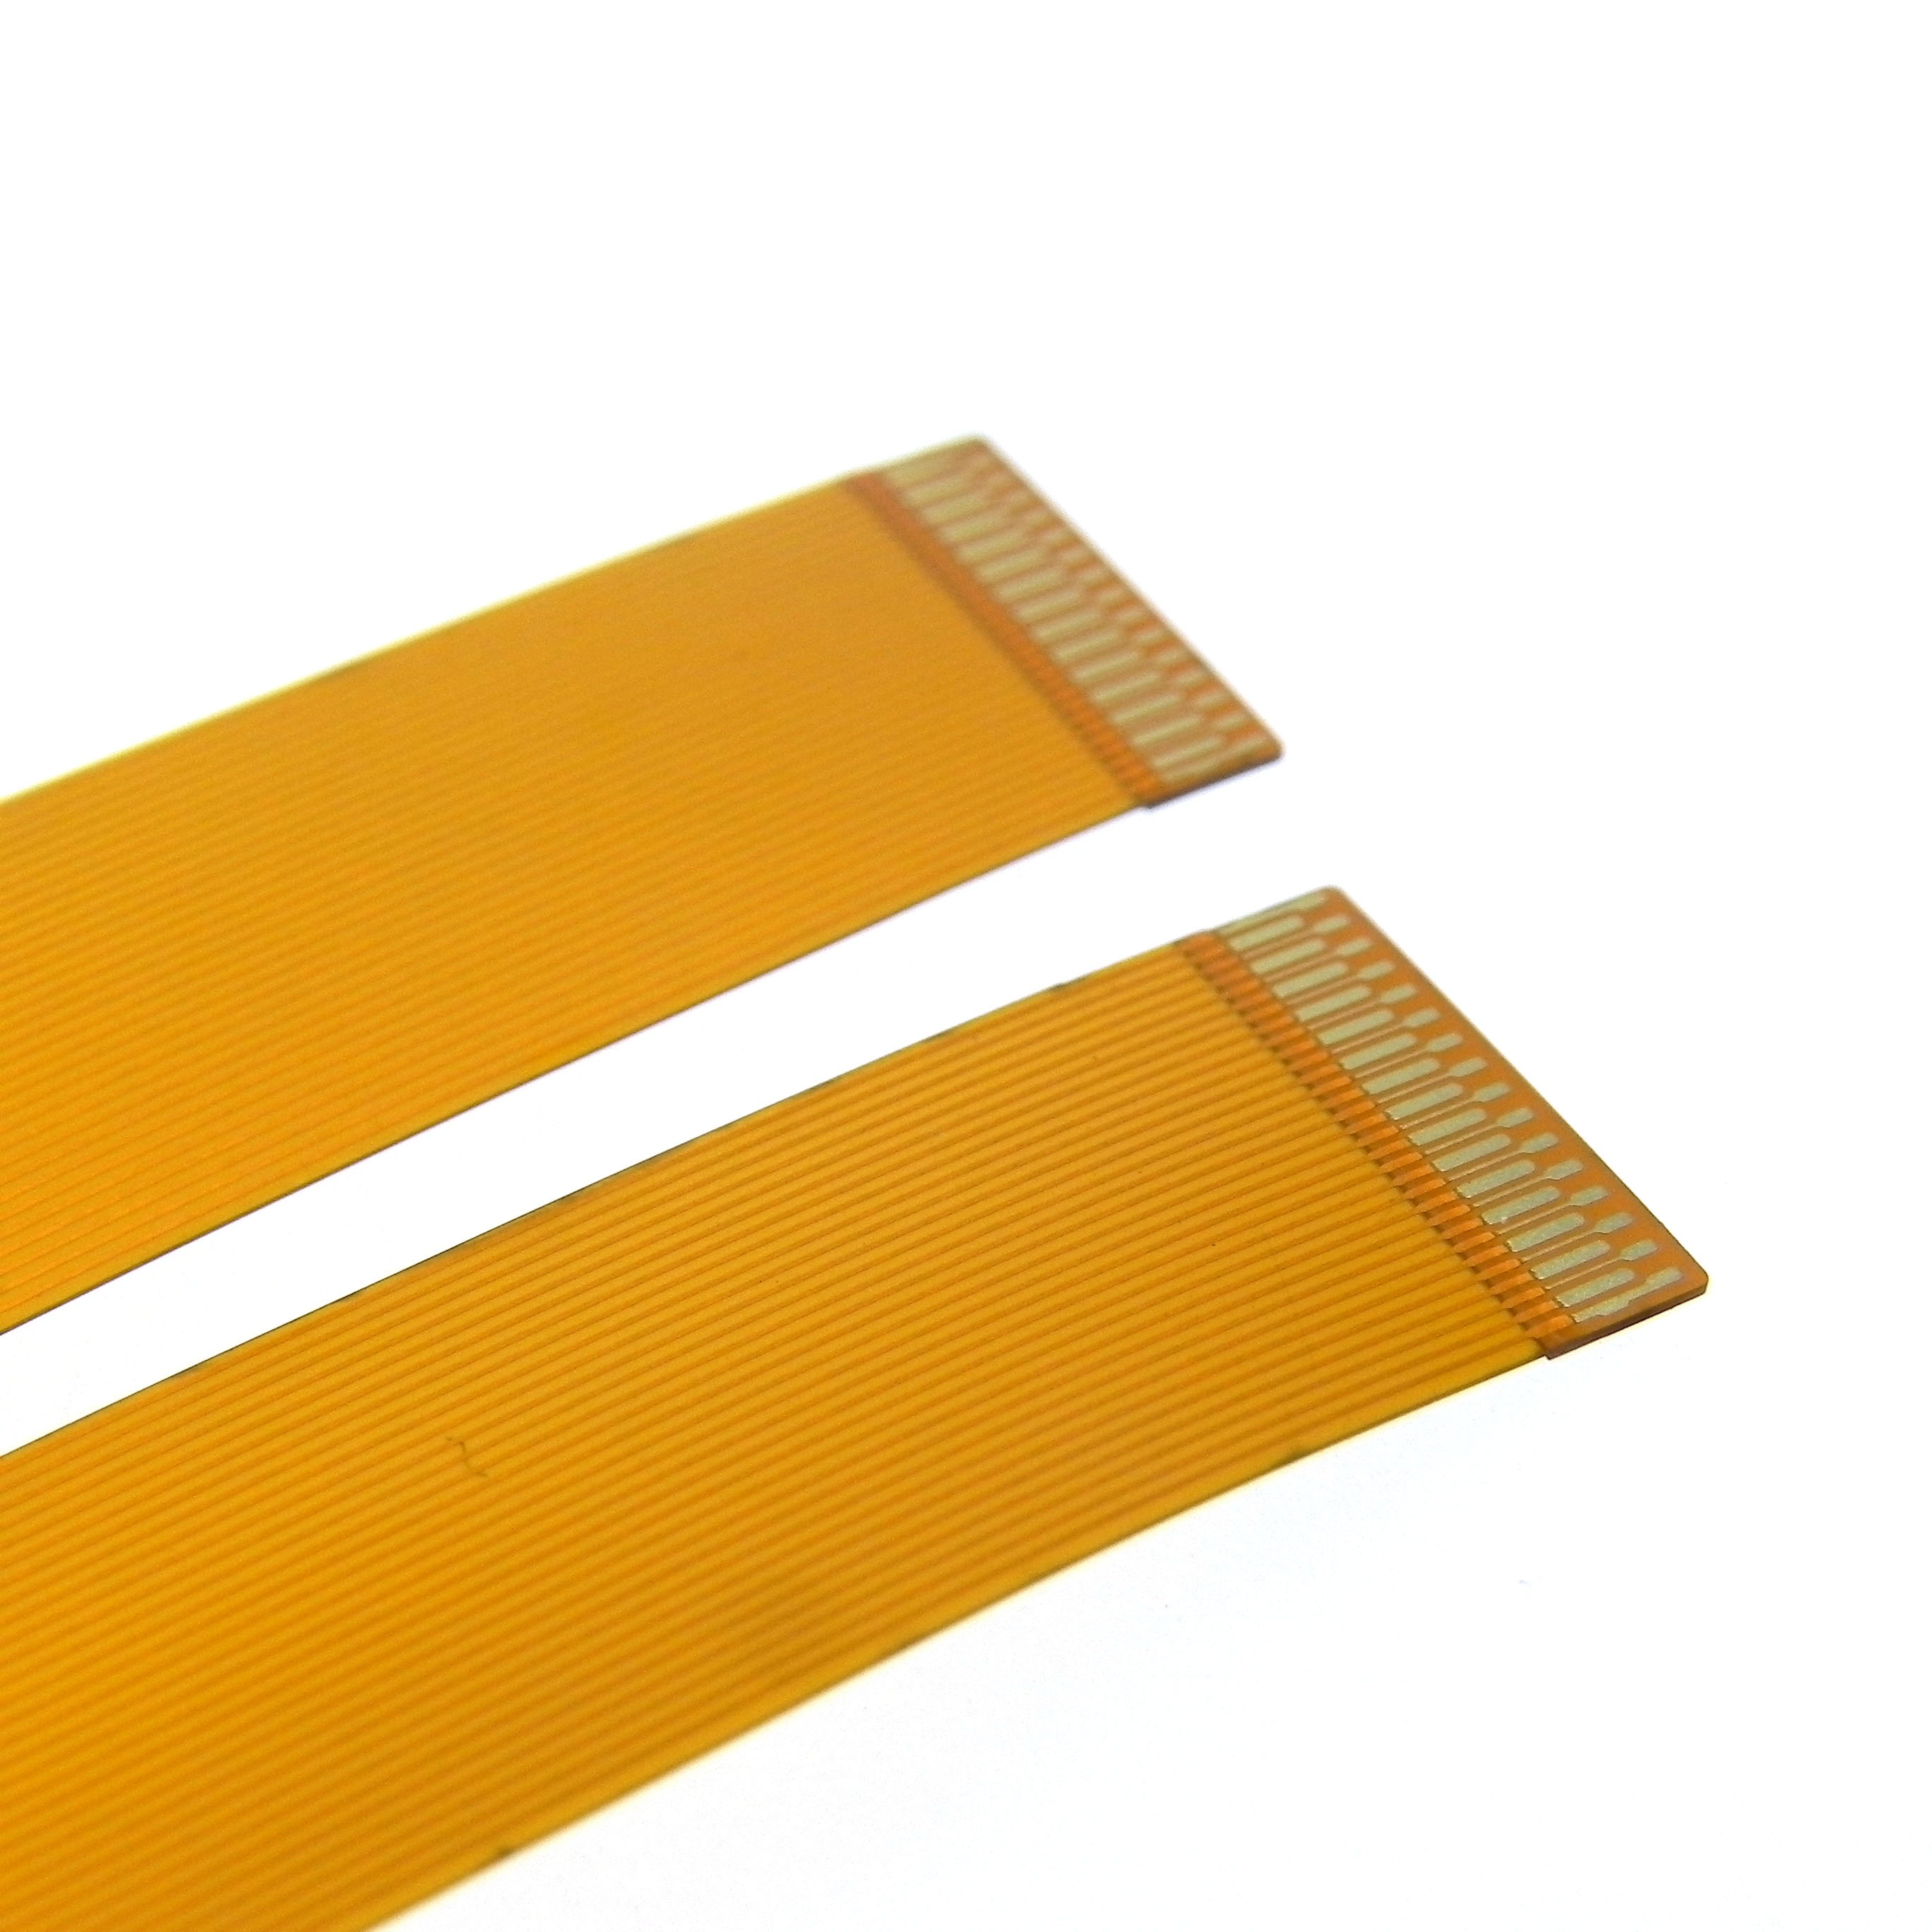 Custom  0.3mm pitch 31pin 100mm flexible  flat fpc cable  match with FH35C-31S-0.3SHW